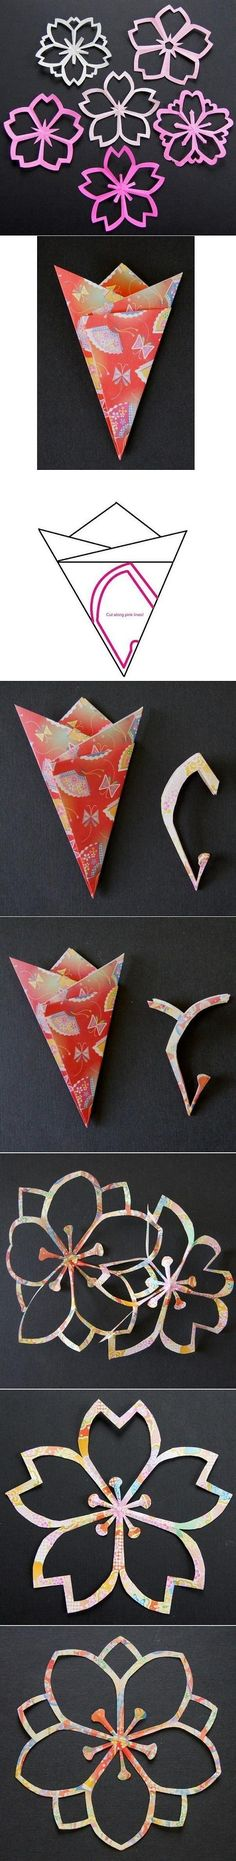 DIY Flower Paper Cutting...there are no directions for how to fold the paper, but the flowers sure are pretty!